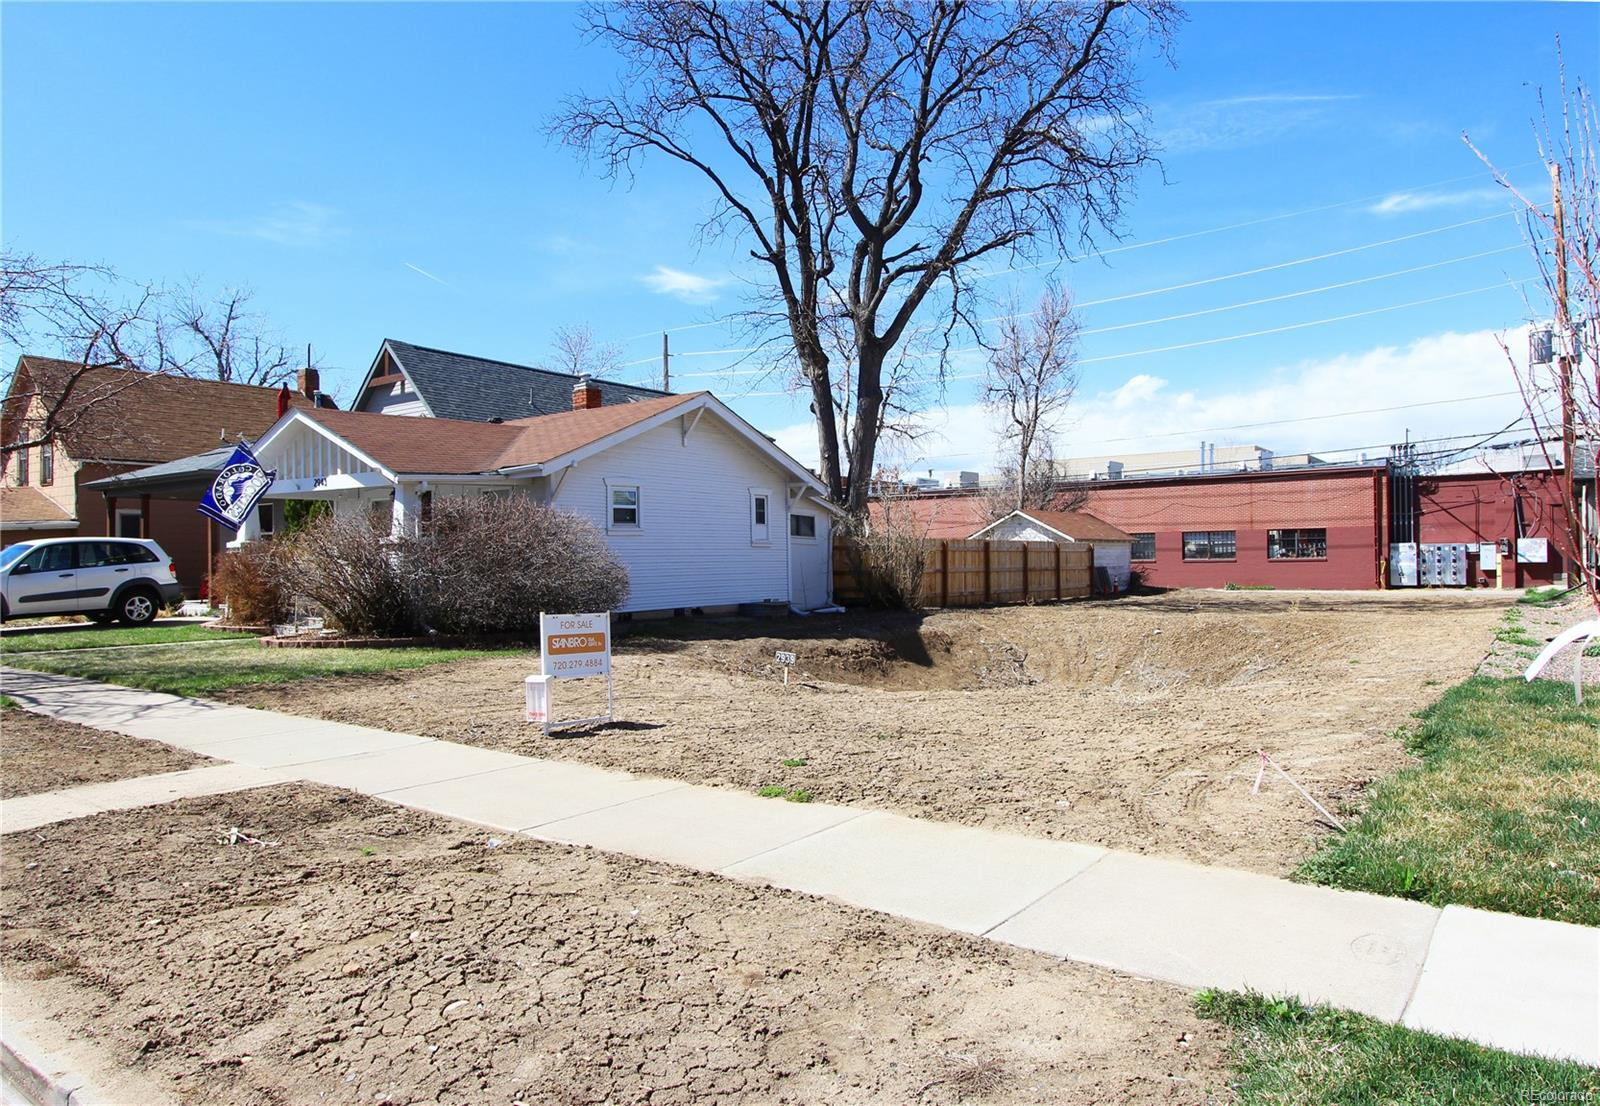 2939 Lincoln Street, Englewood, CO 80113 - Englewood, CO real estate listing